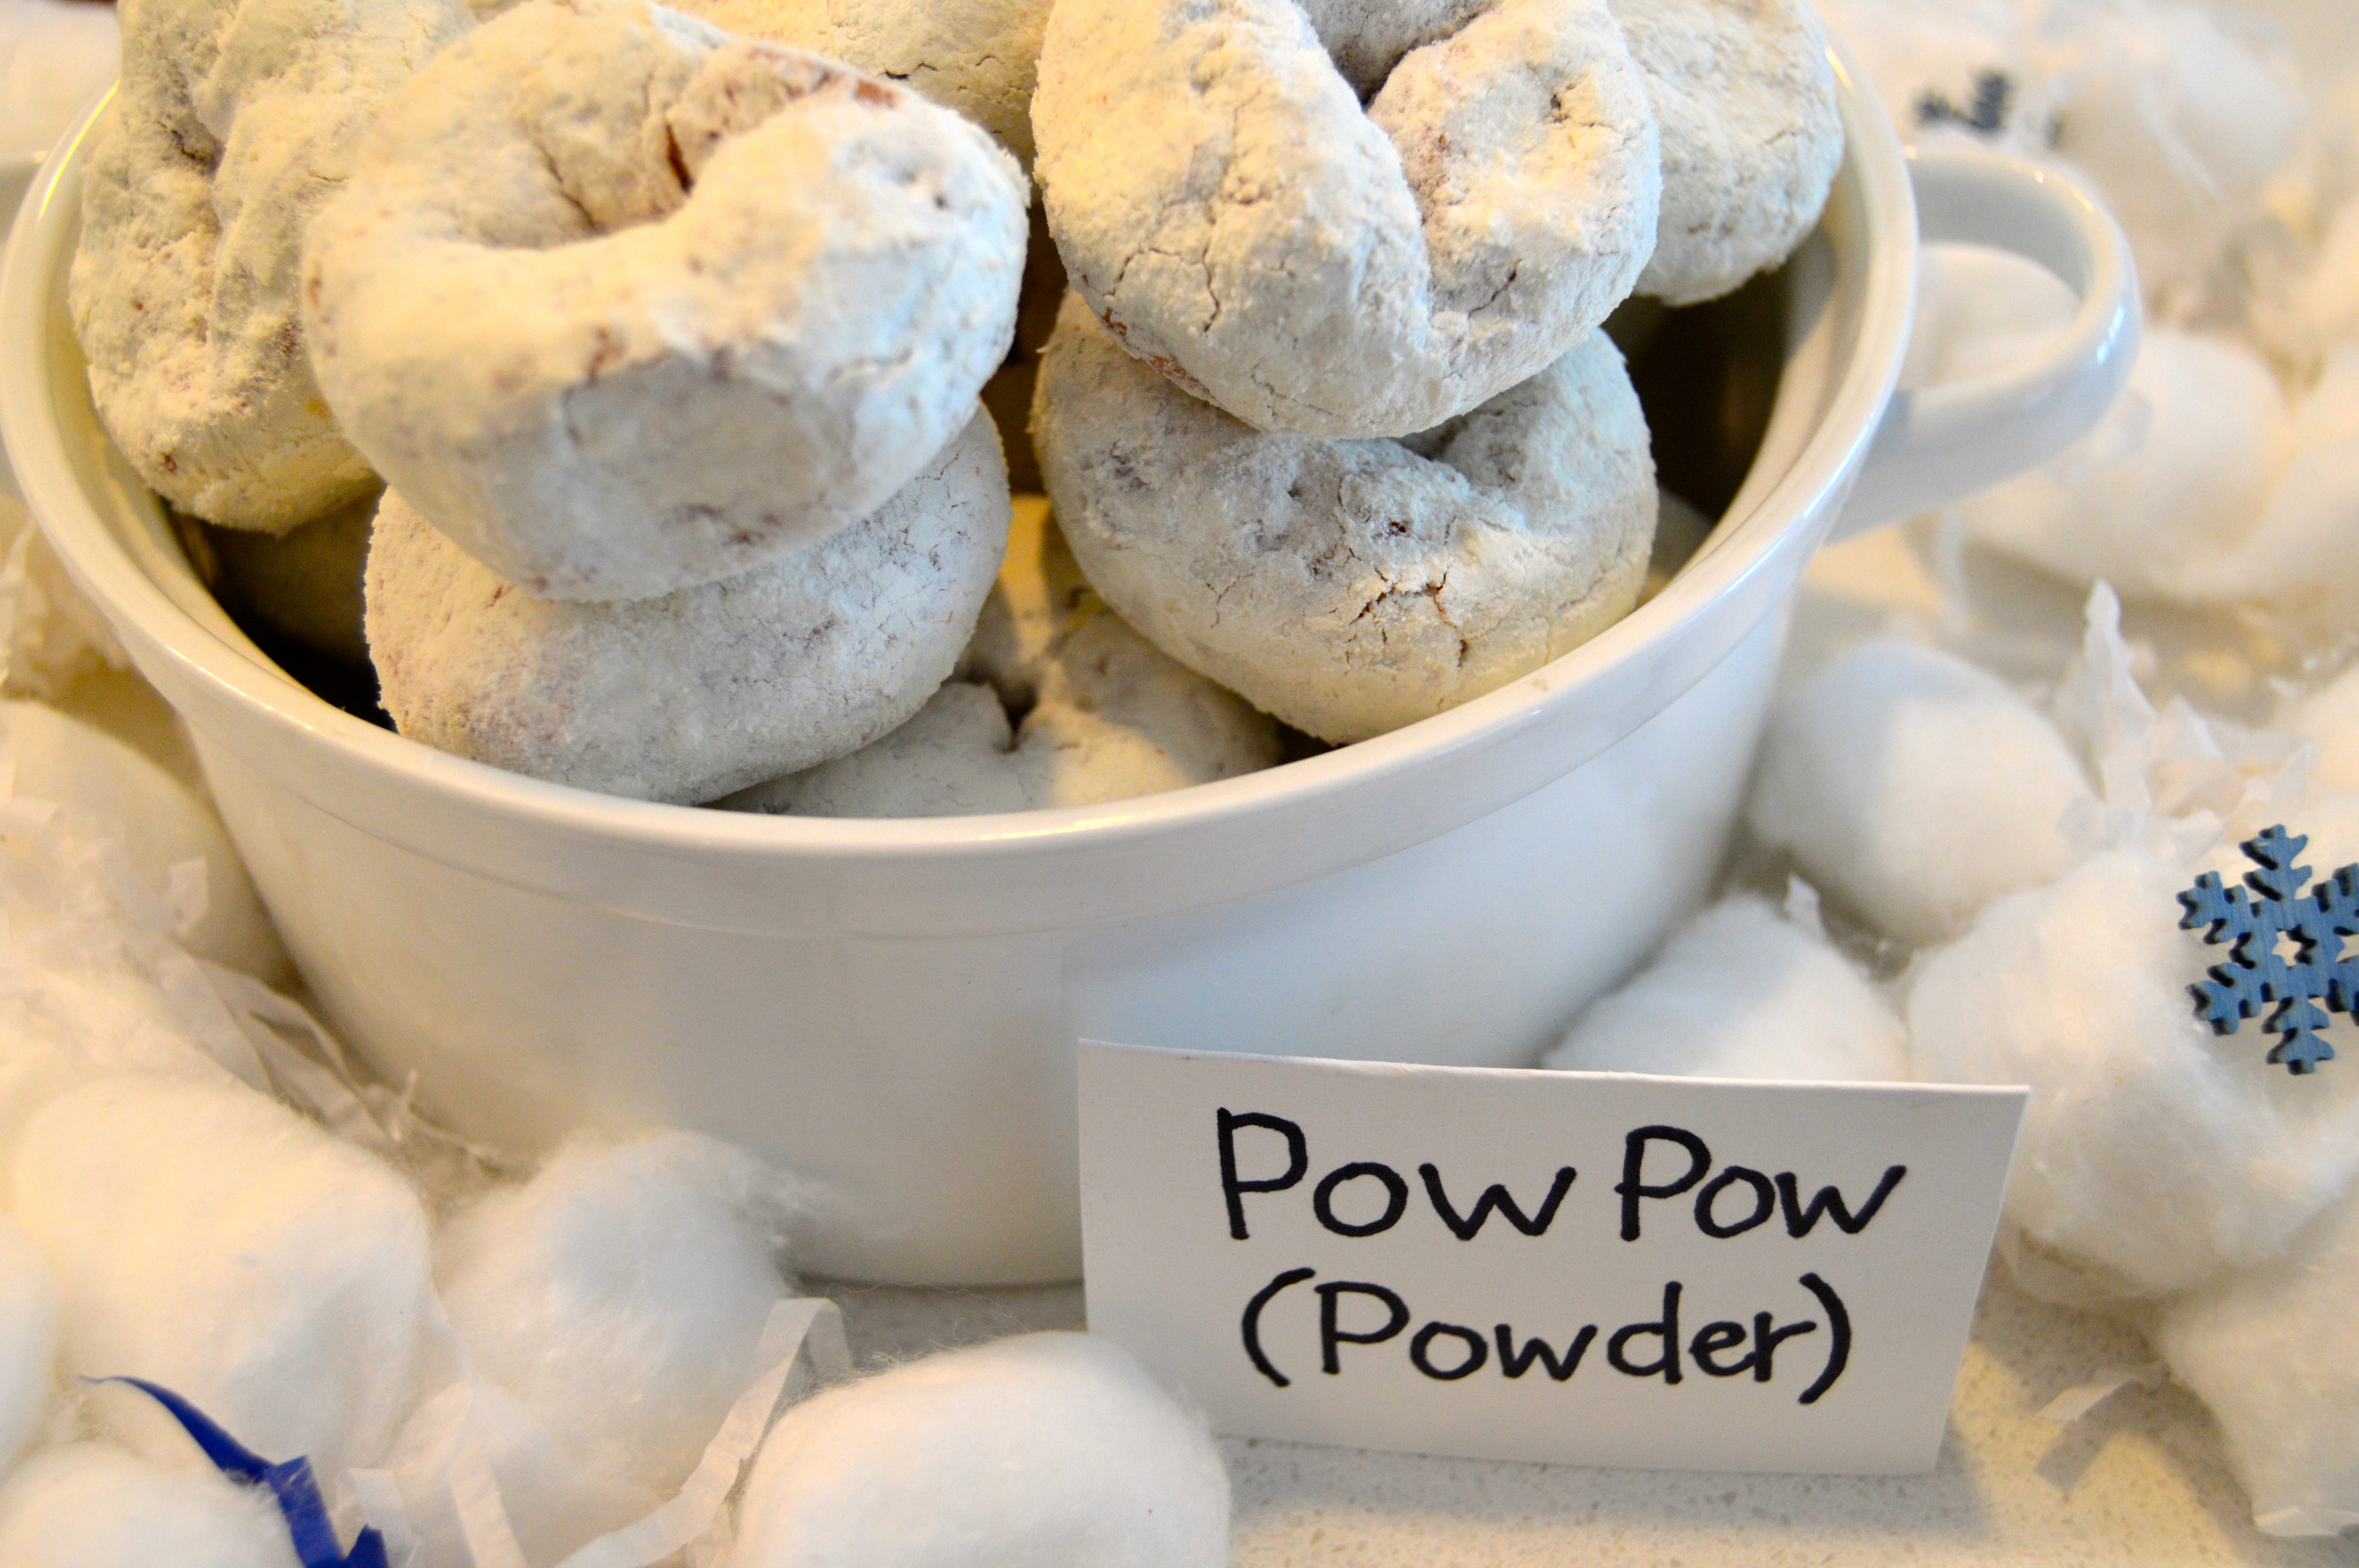 Ski themed party food: Pow Pow (powdered donuts)